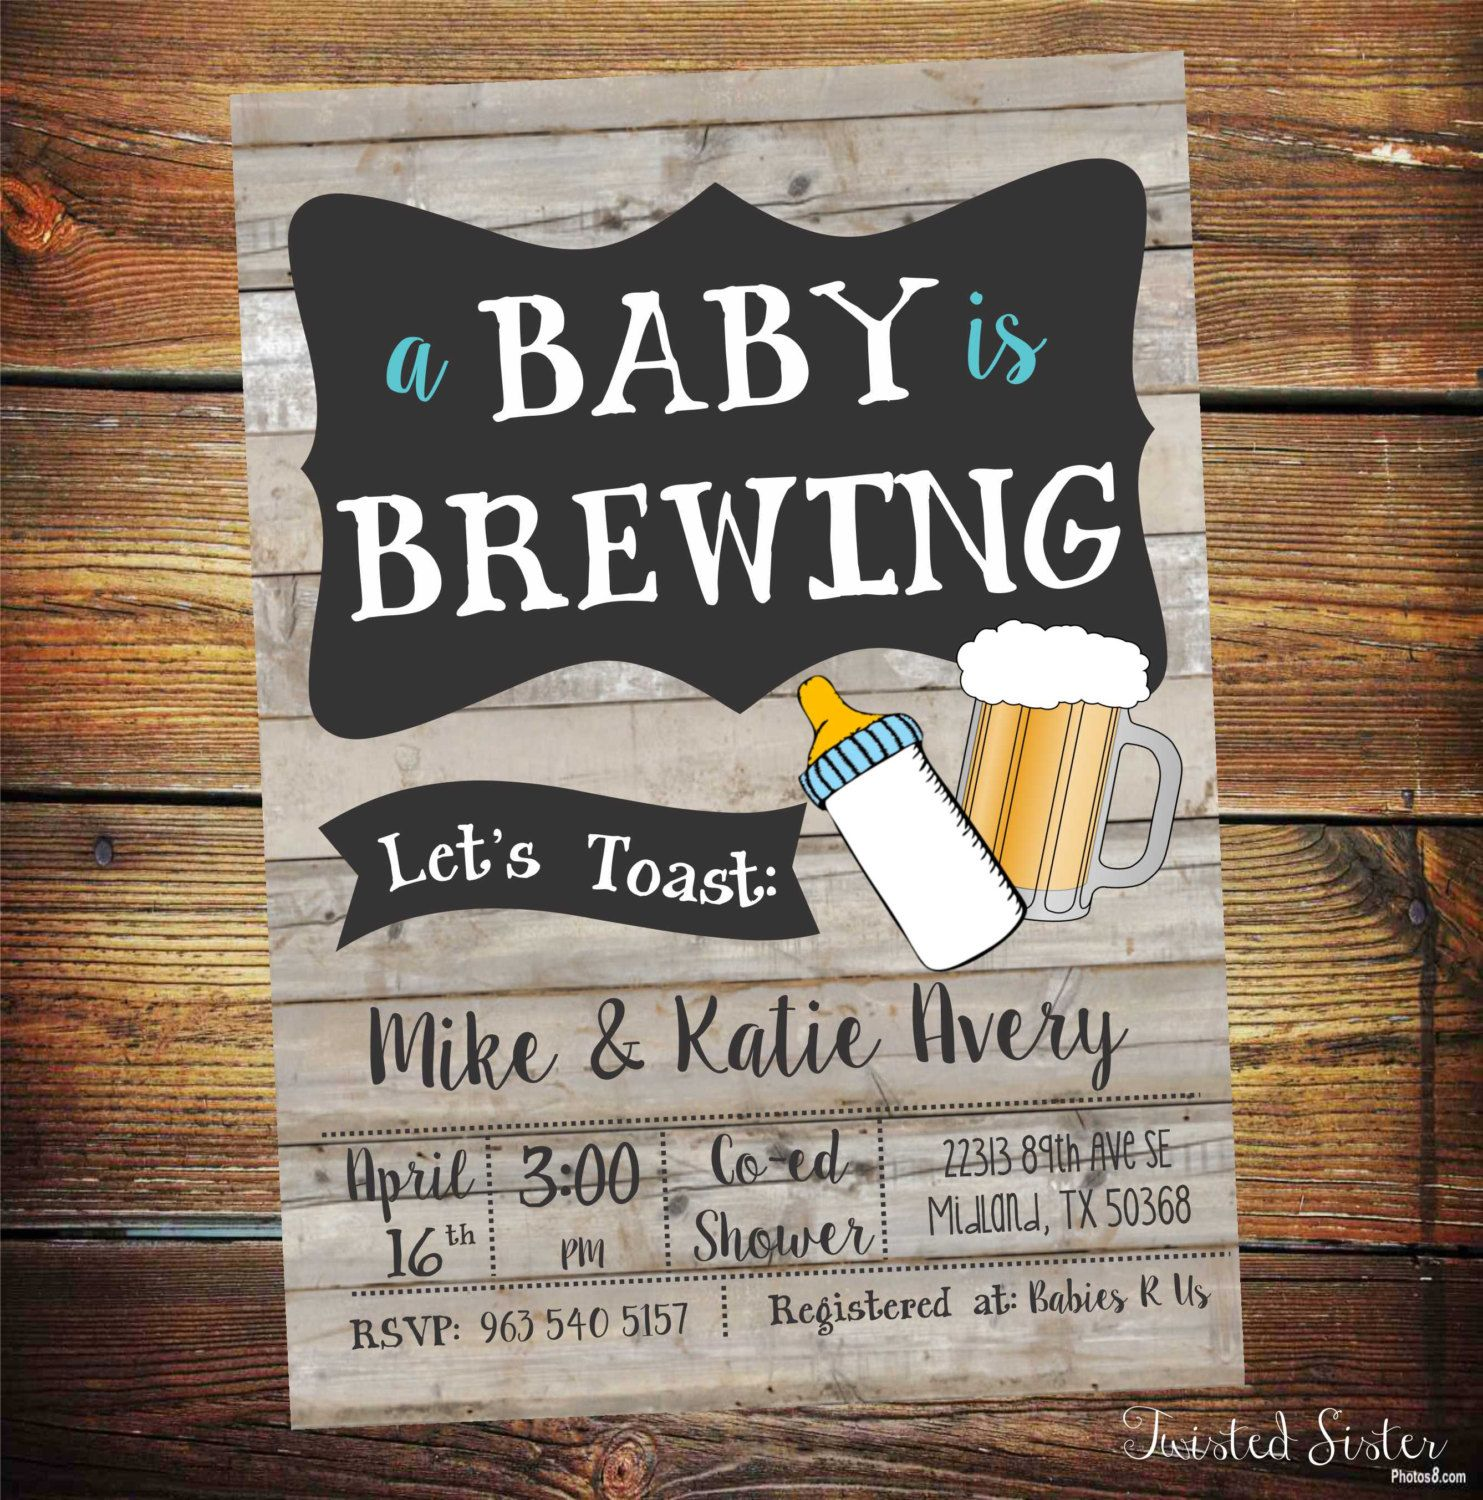 A Baby is Brewing Invitation, Beer Baby Shower Invitation, Beer Baby Shower,  co ed baby shower invitation, co ed baby shower invite, ...